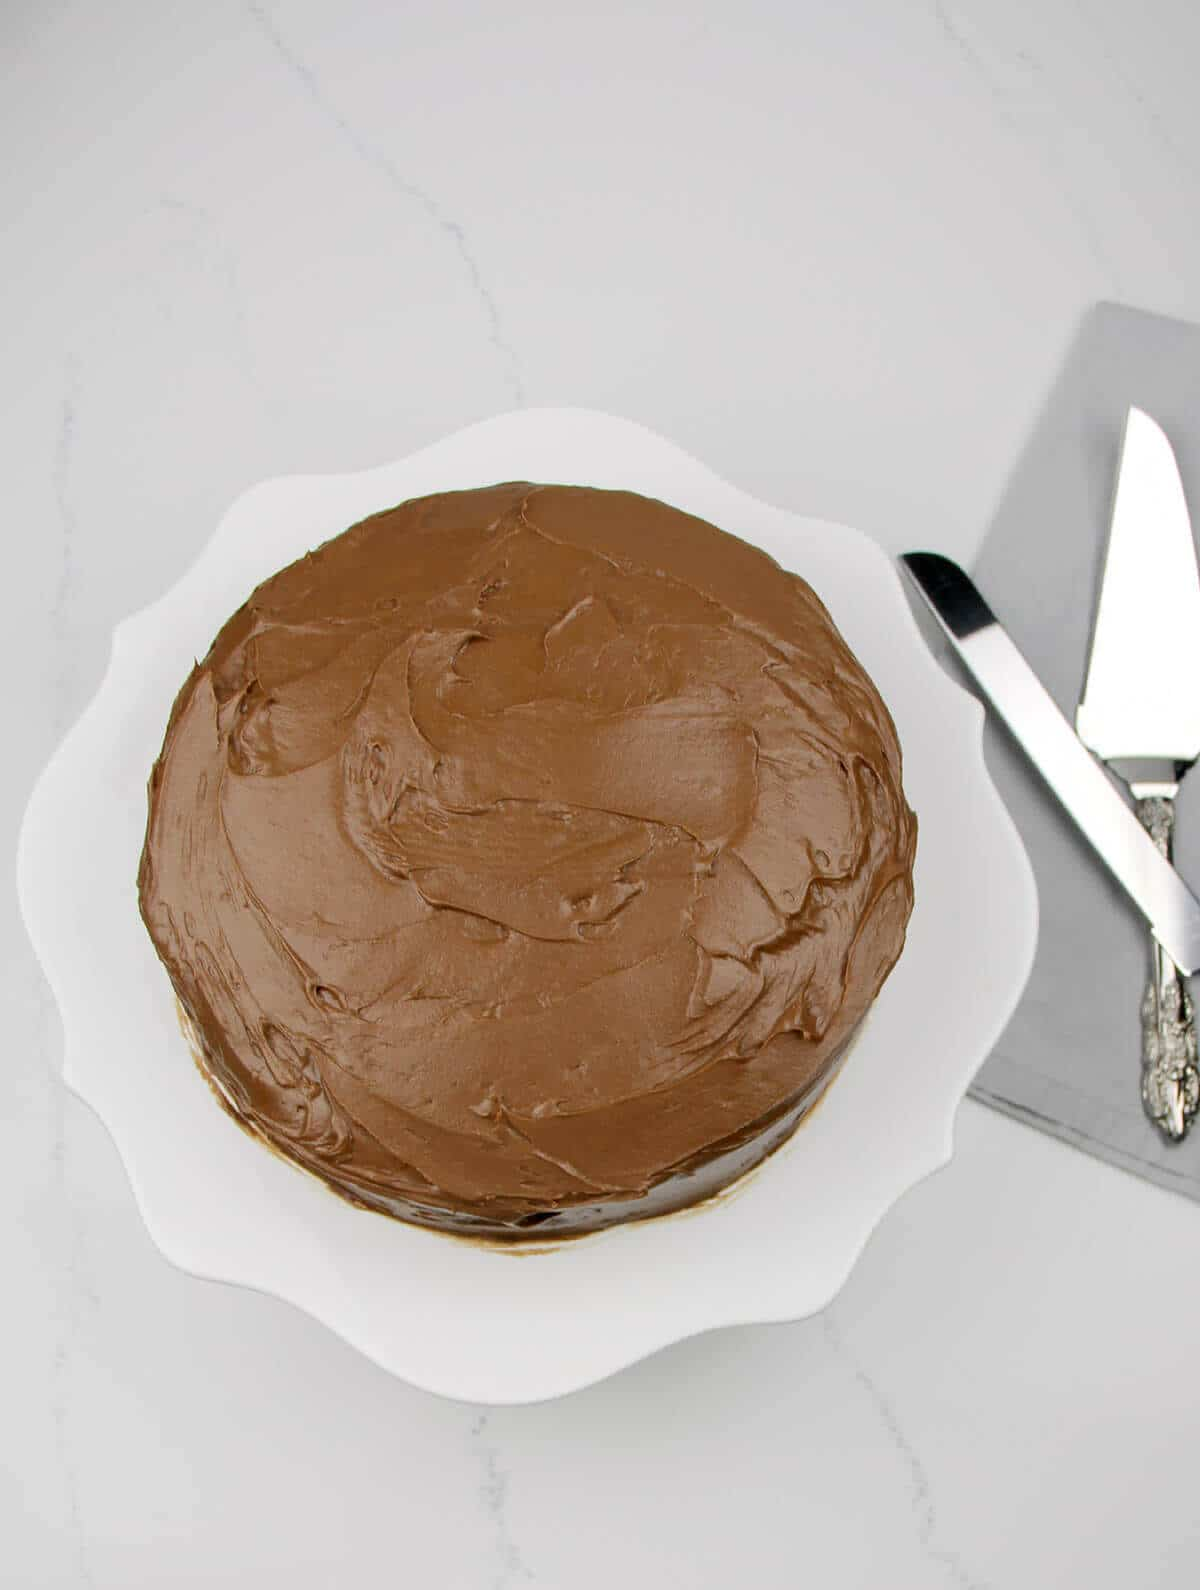 Best Chocolate Cake - Hershey's Devil's Food Cake